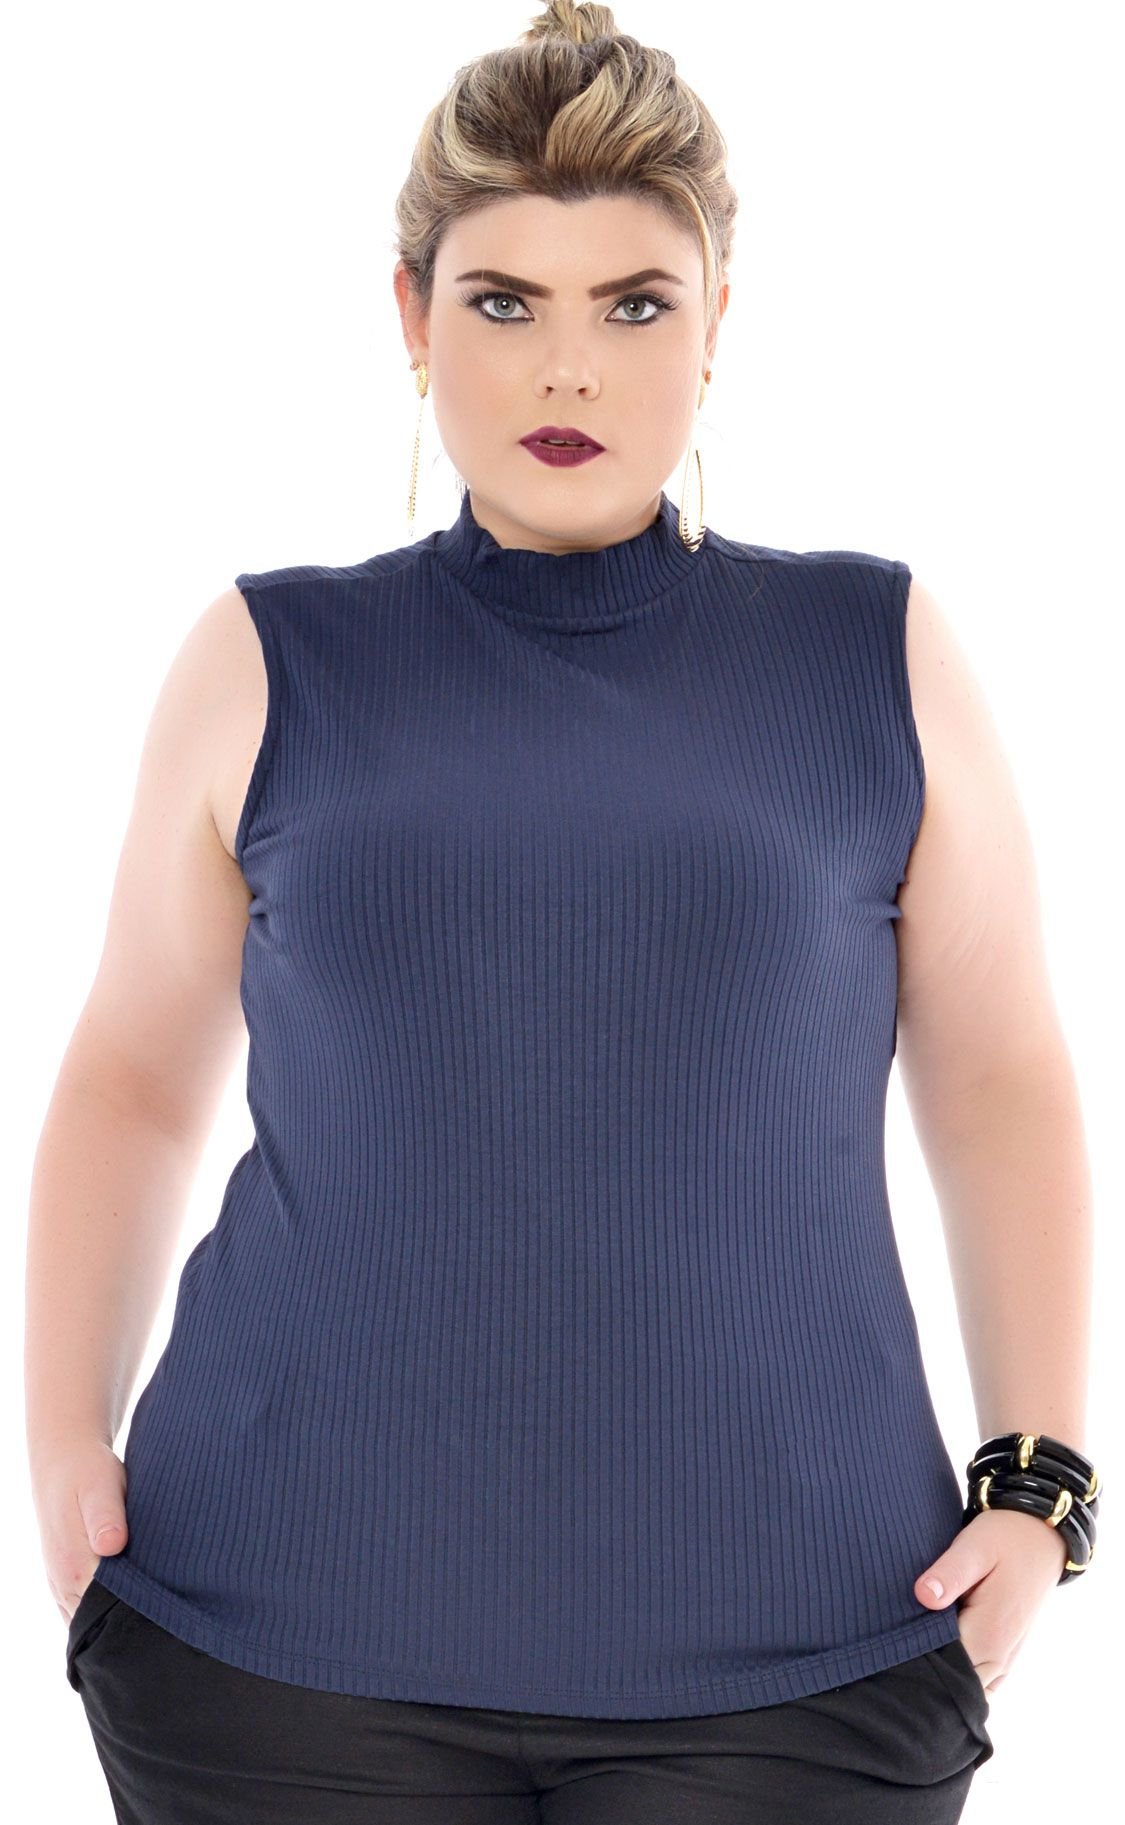 Regata Plus Size Ribana